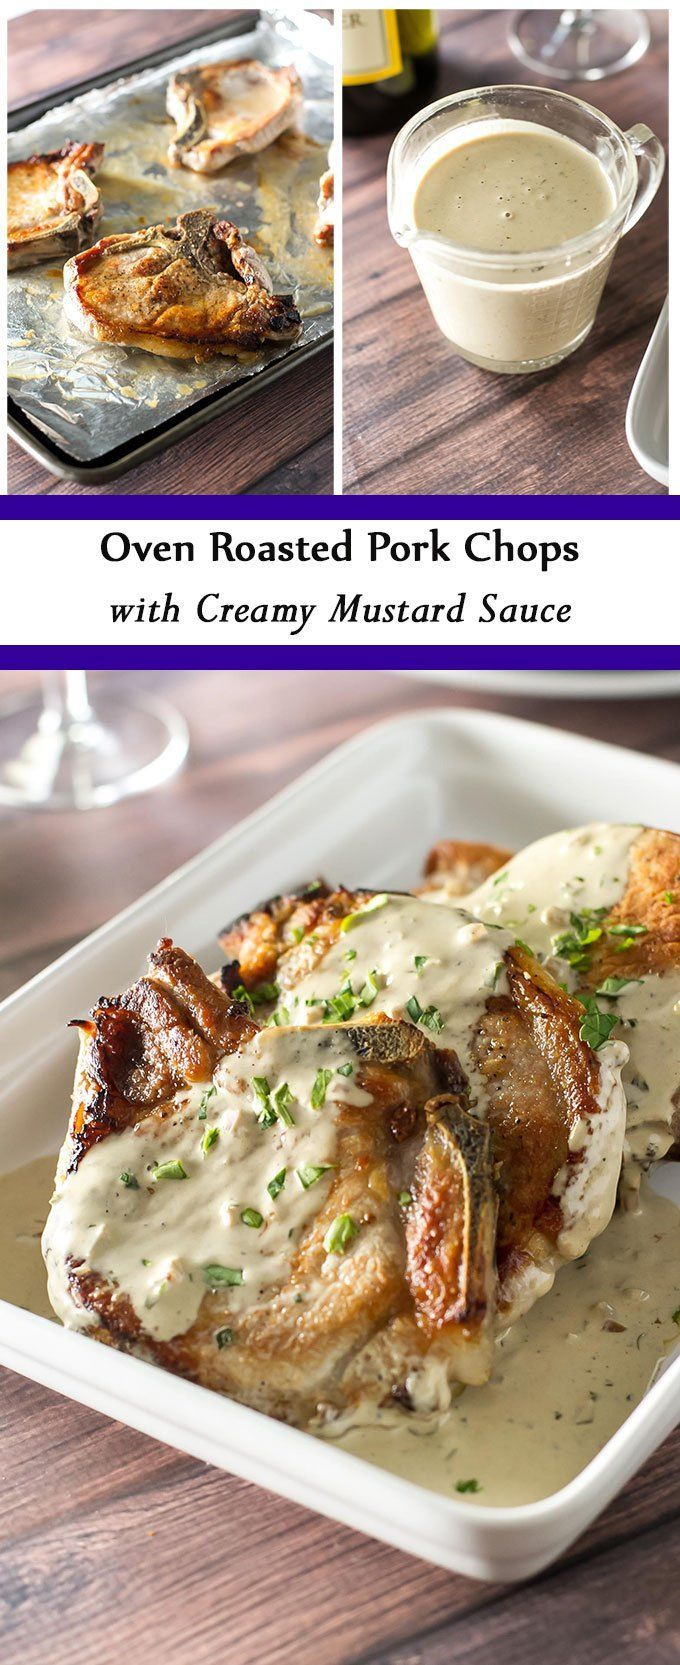 Easy oven roasted pork chops topped with a creamy mustard sauce . This elegant dish takes only 30 minutes start to finish! | girlgonegourmet.com